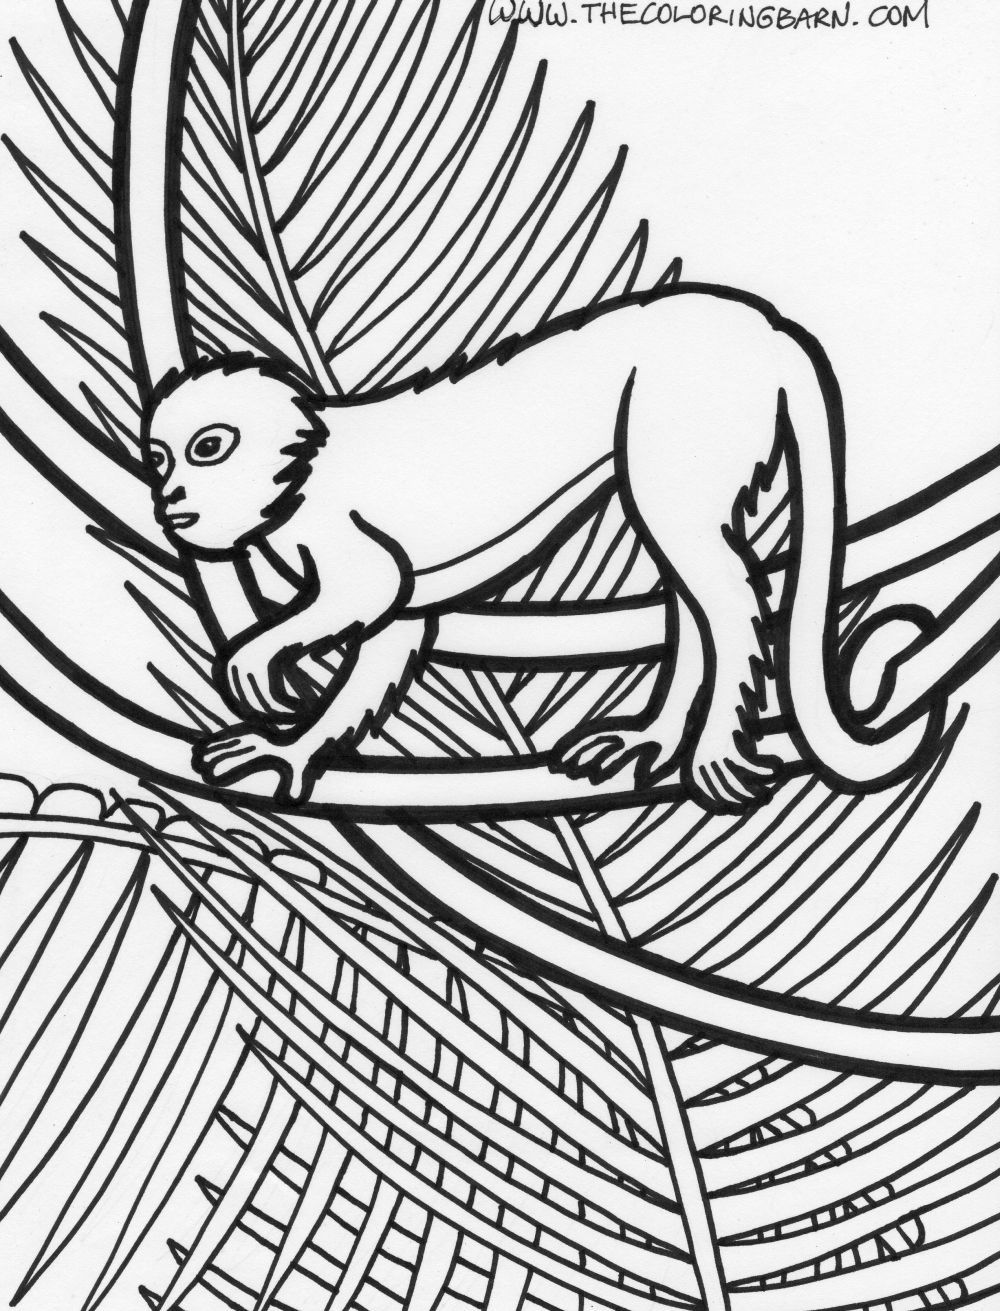 Coloring pages rainforest - Rainforest Plants Coloring Pages Page Rainforest Monkey Coloring Page Rainforest Gorilla Coloring Page